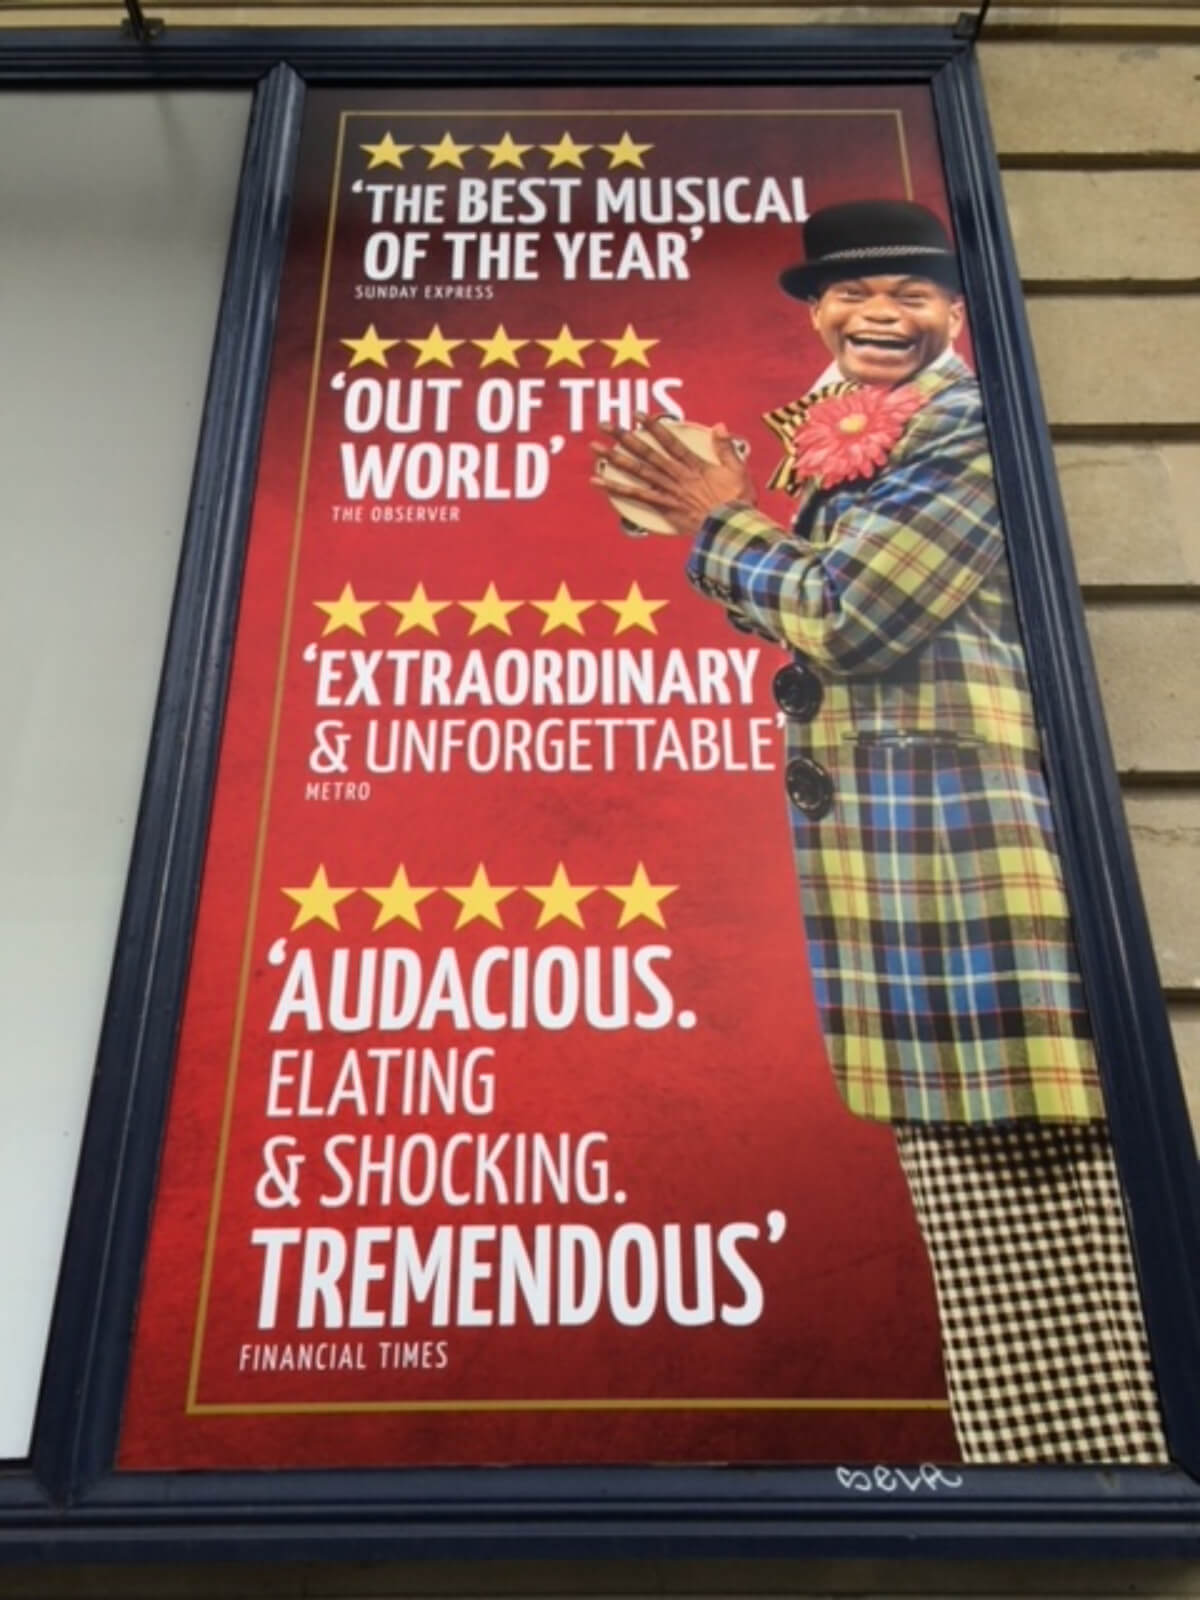 The Scottsboro Boys West End poster showcasing its outstanding reviews—all five star ratings.